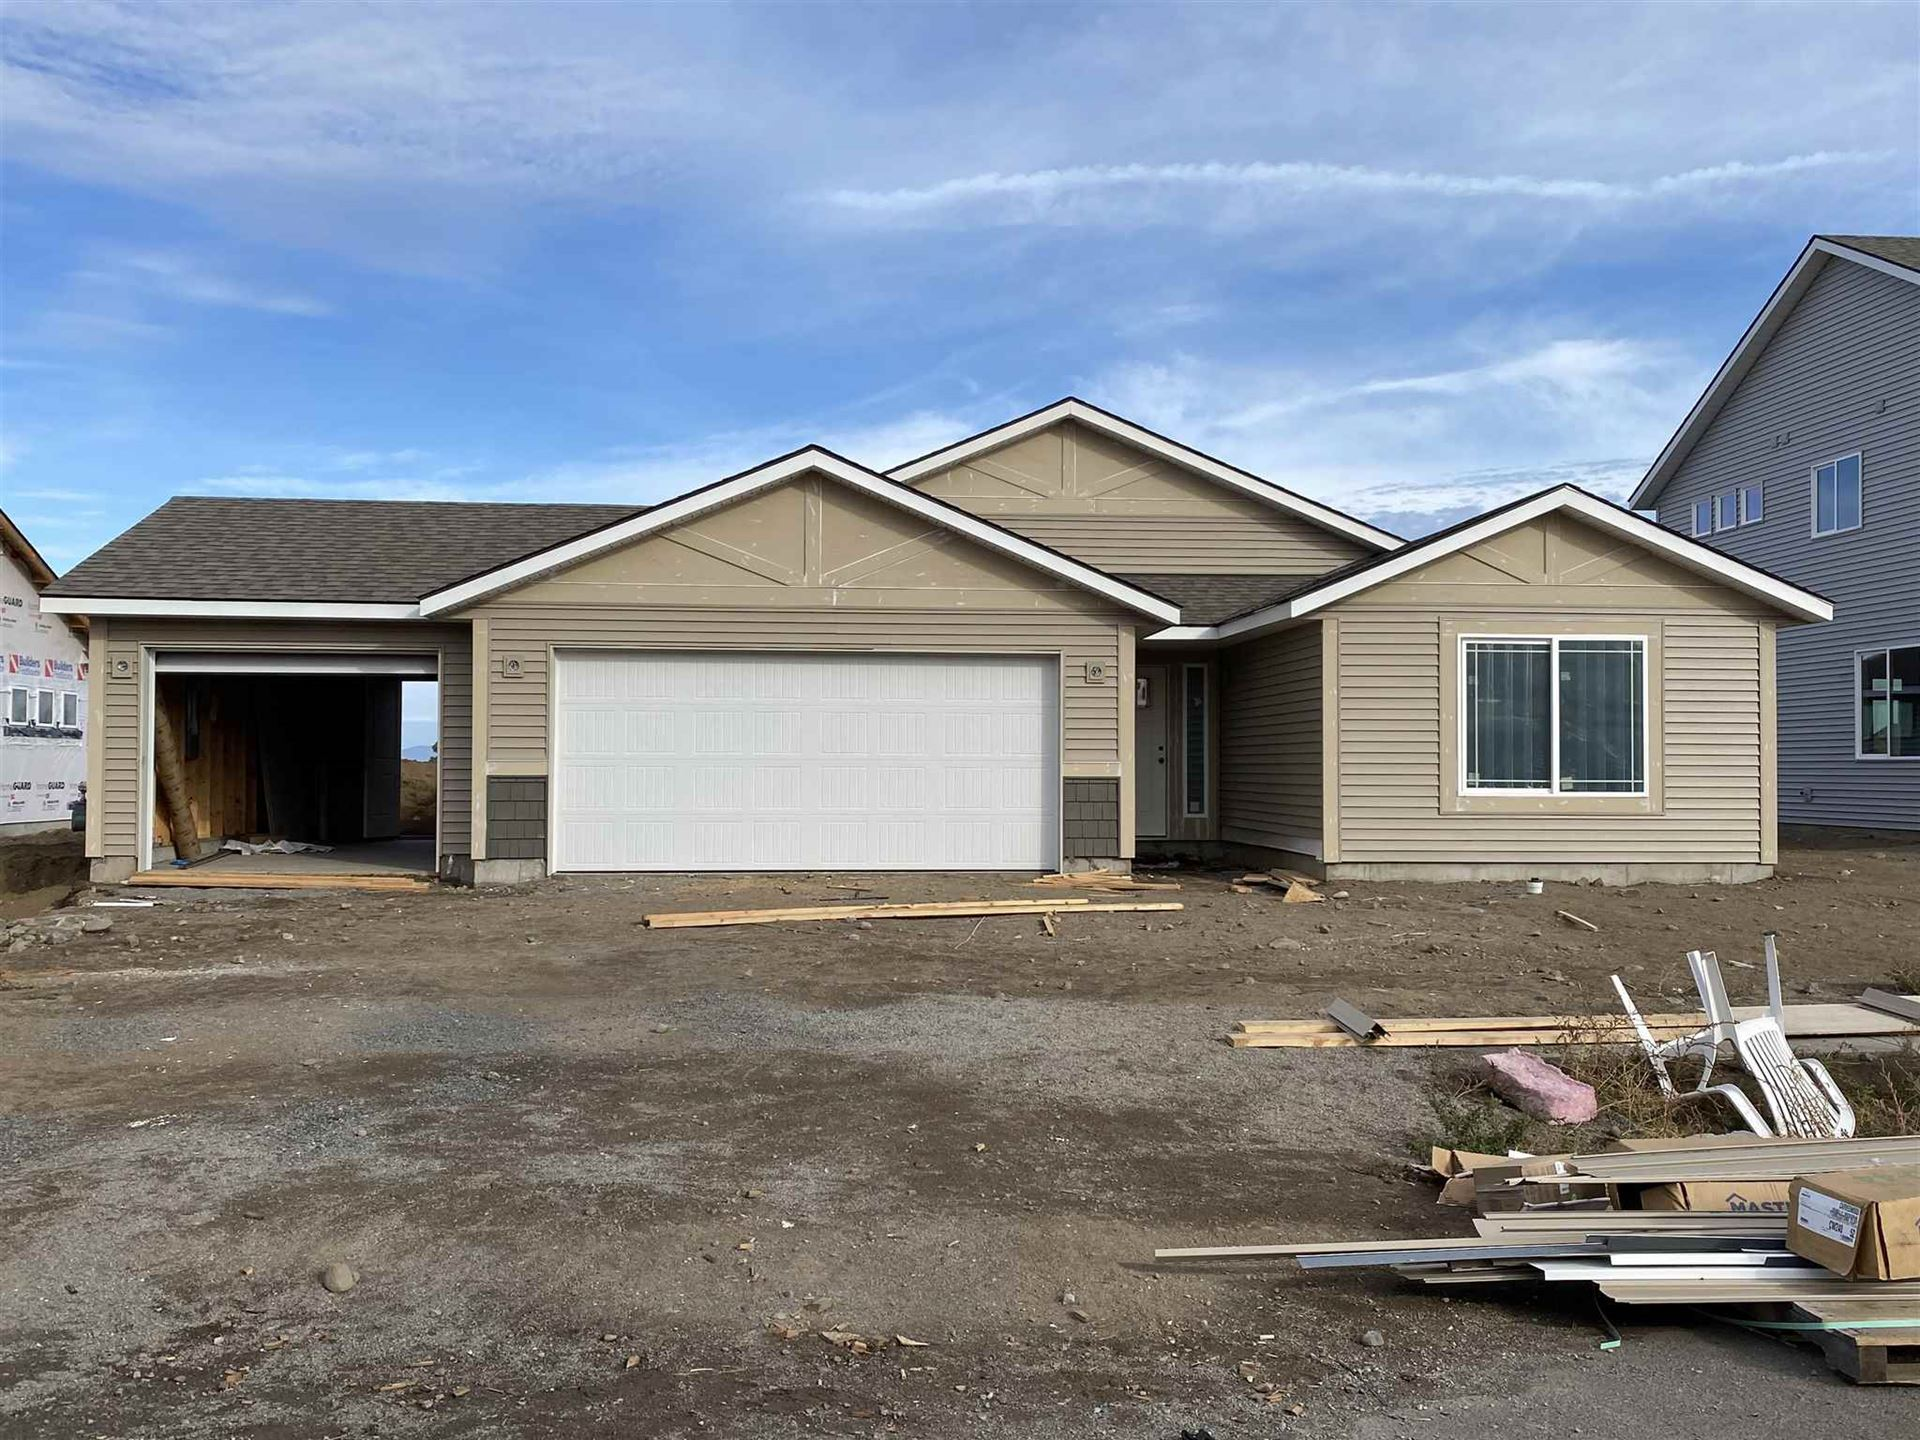 13028 W Pacific Ave, Airway Heights, WA 99001 - #: 202119830